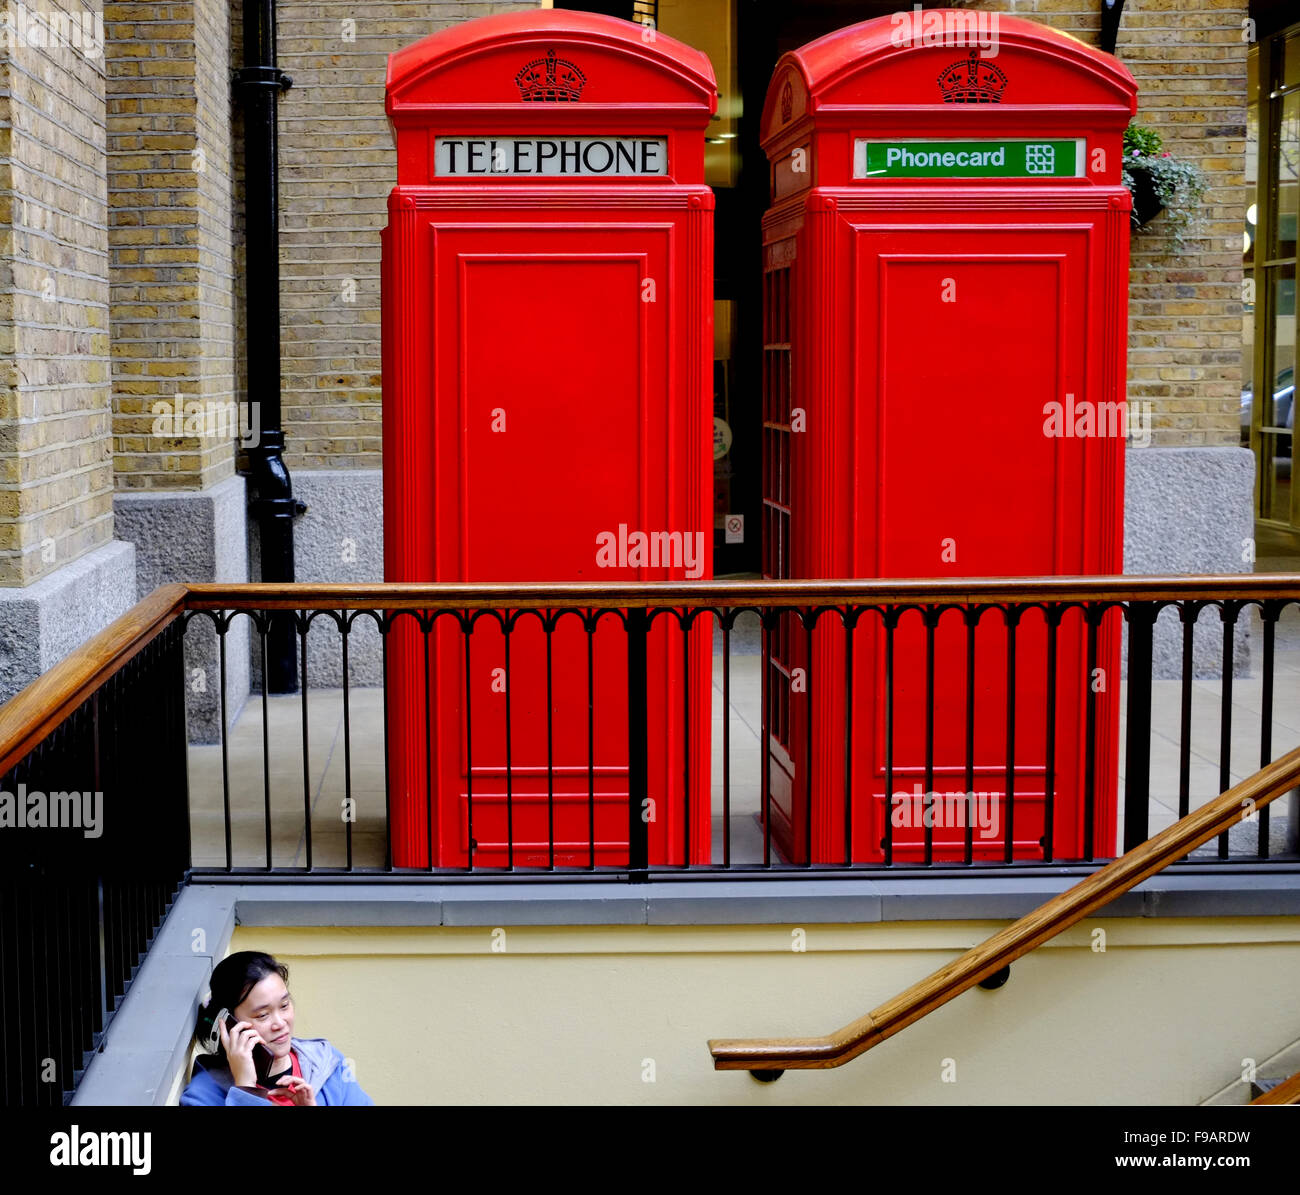 Street photography in London - advancing technology, woman on a mobile phone, in front of 2 telephone boxes - Stock Image